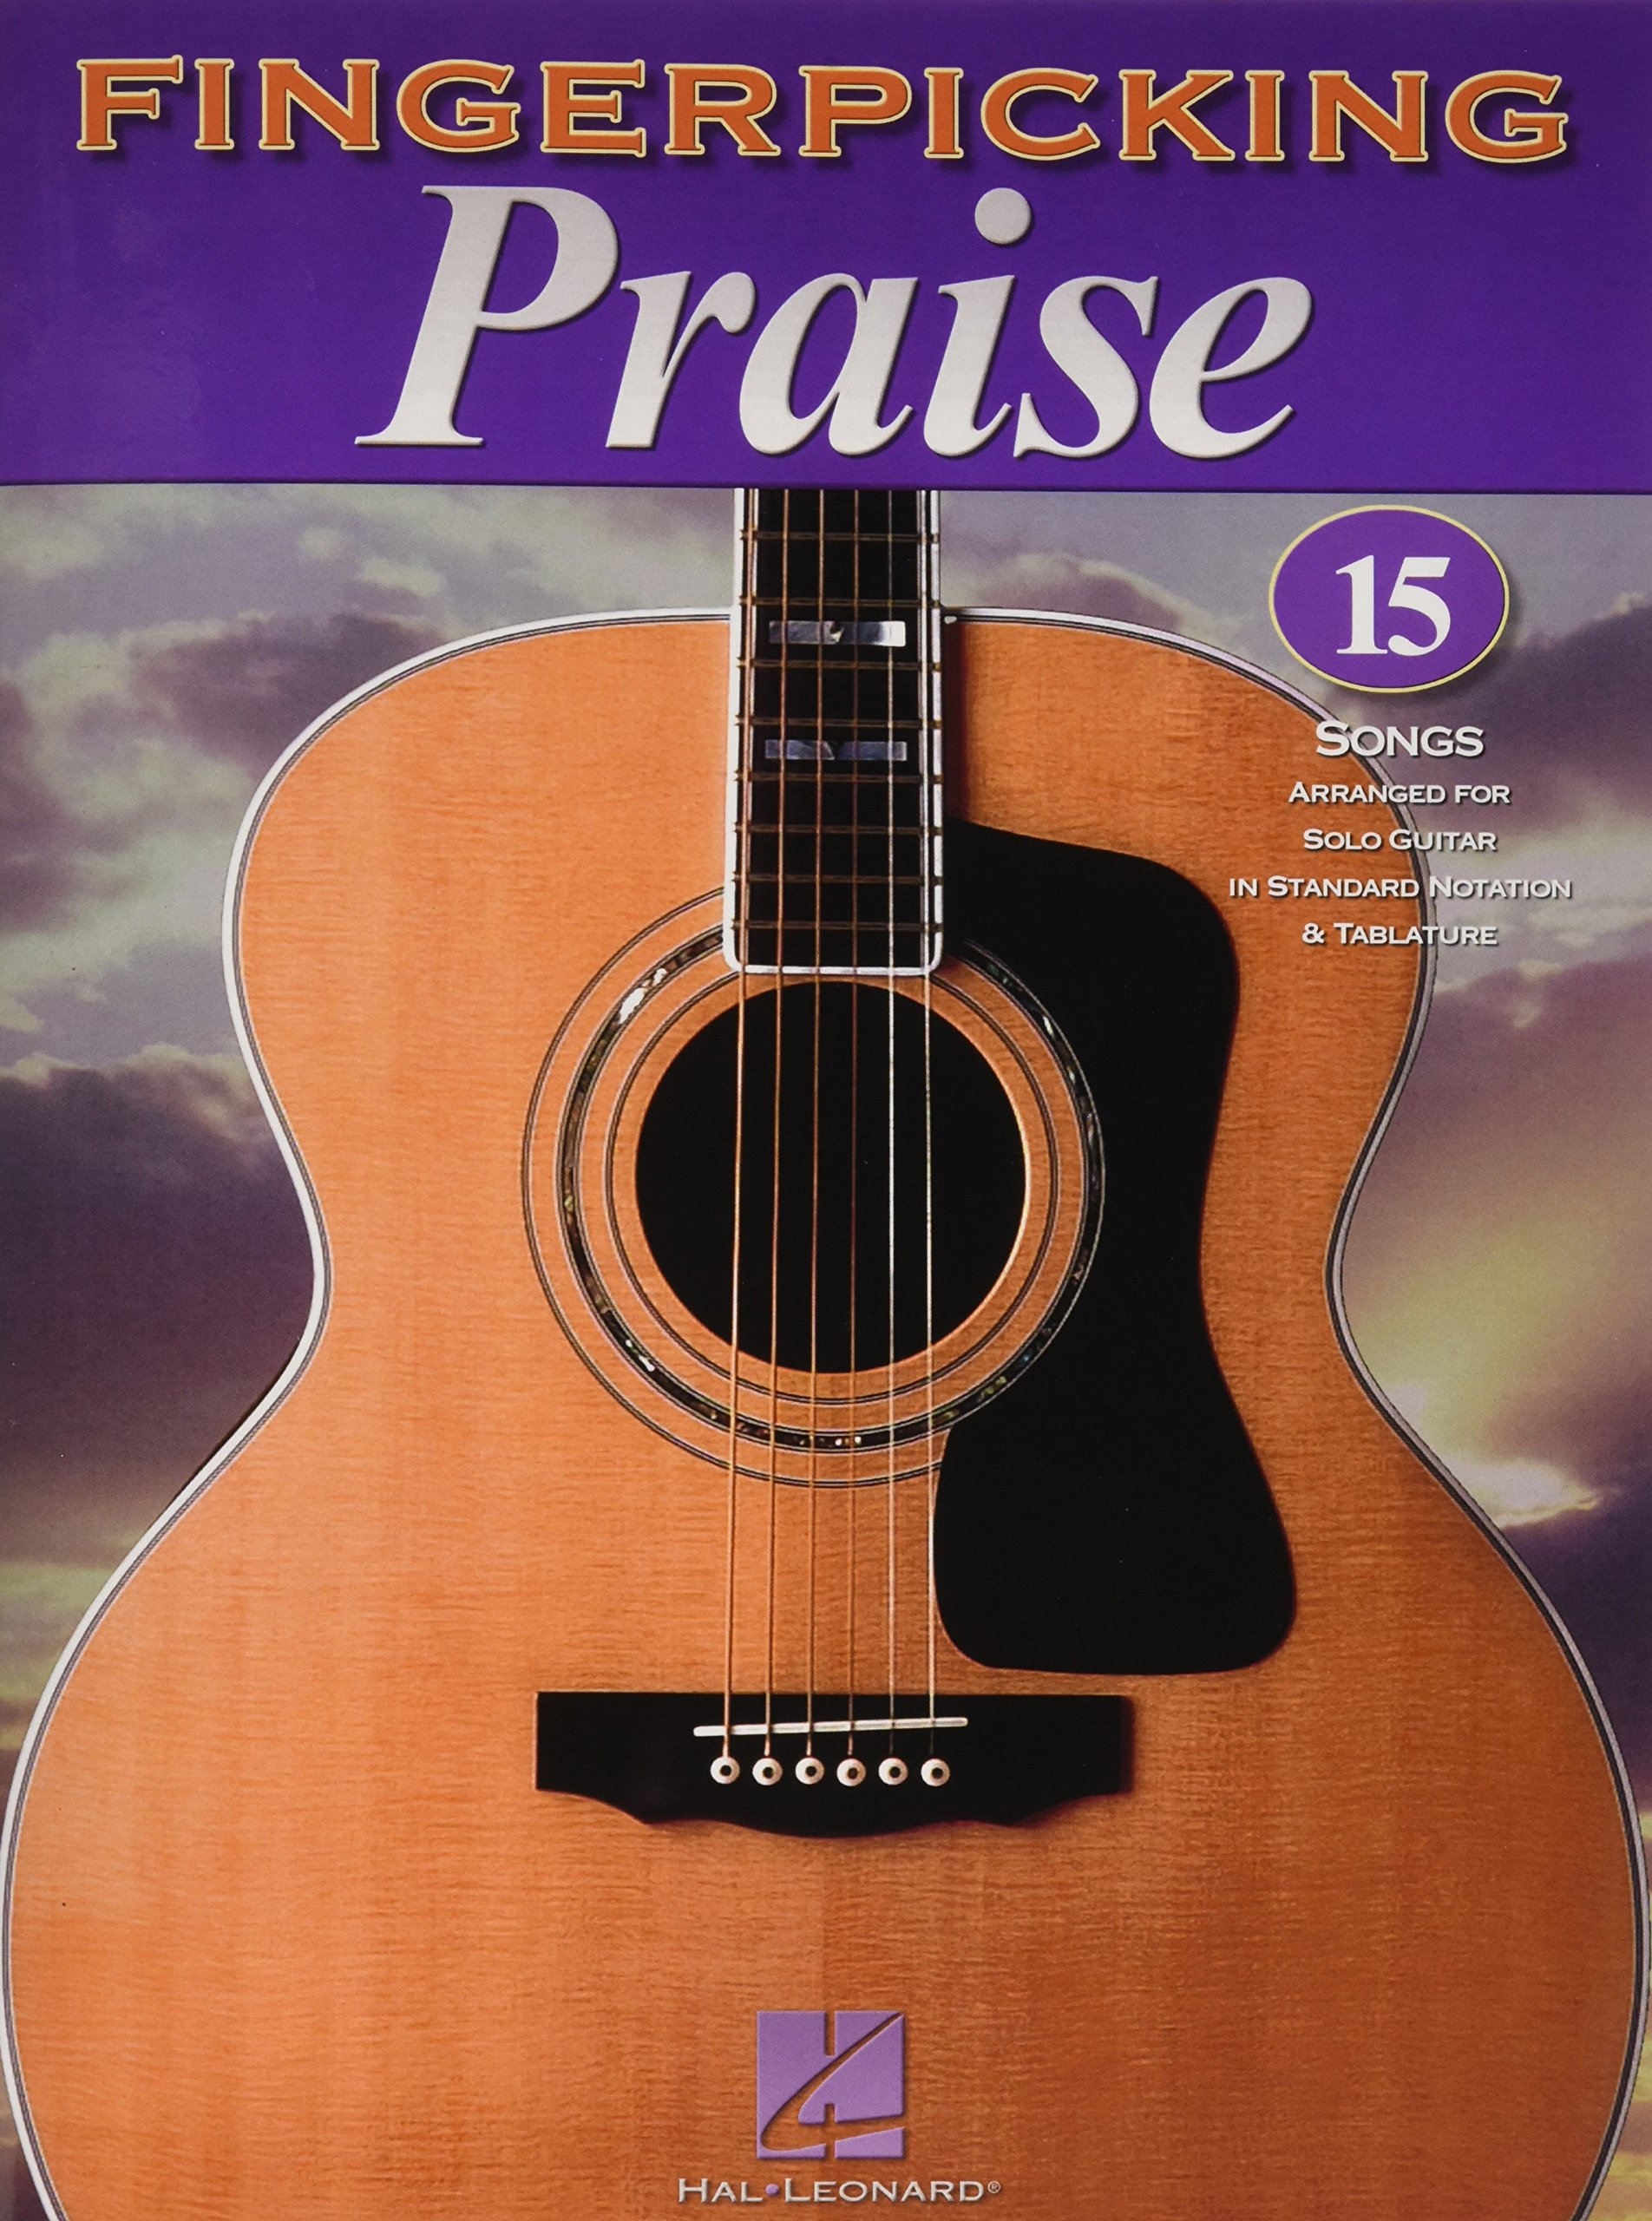 Amazon.com: Fingerpicking Praise (9780634098918): Hal Leonard Corp.: Books